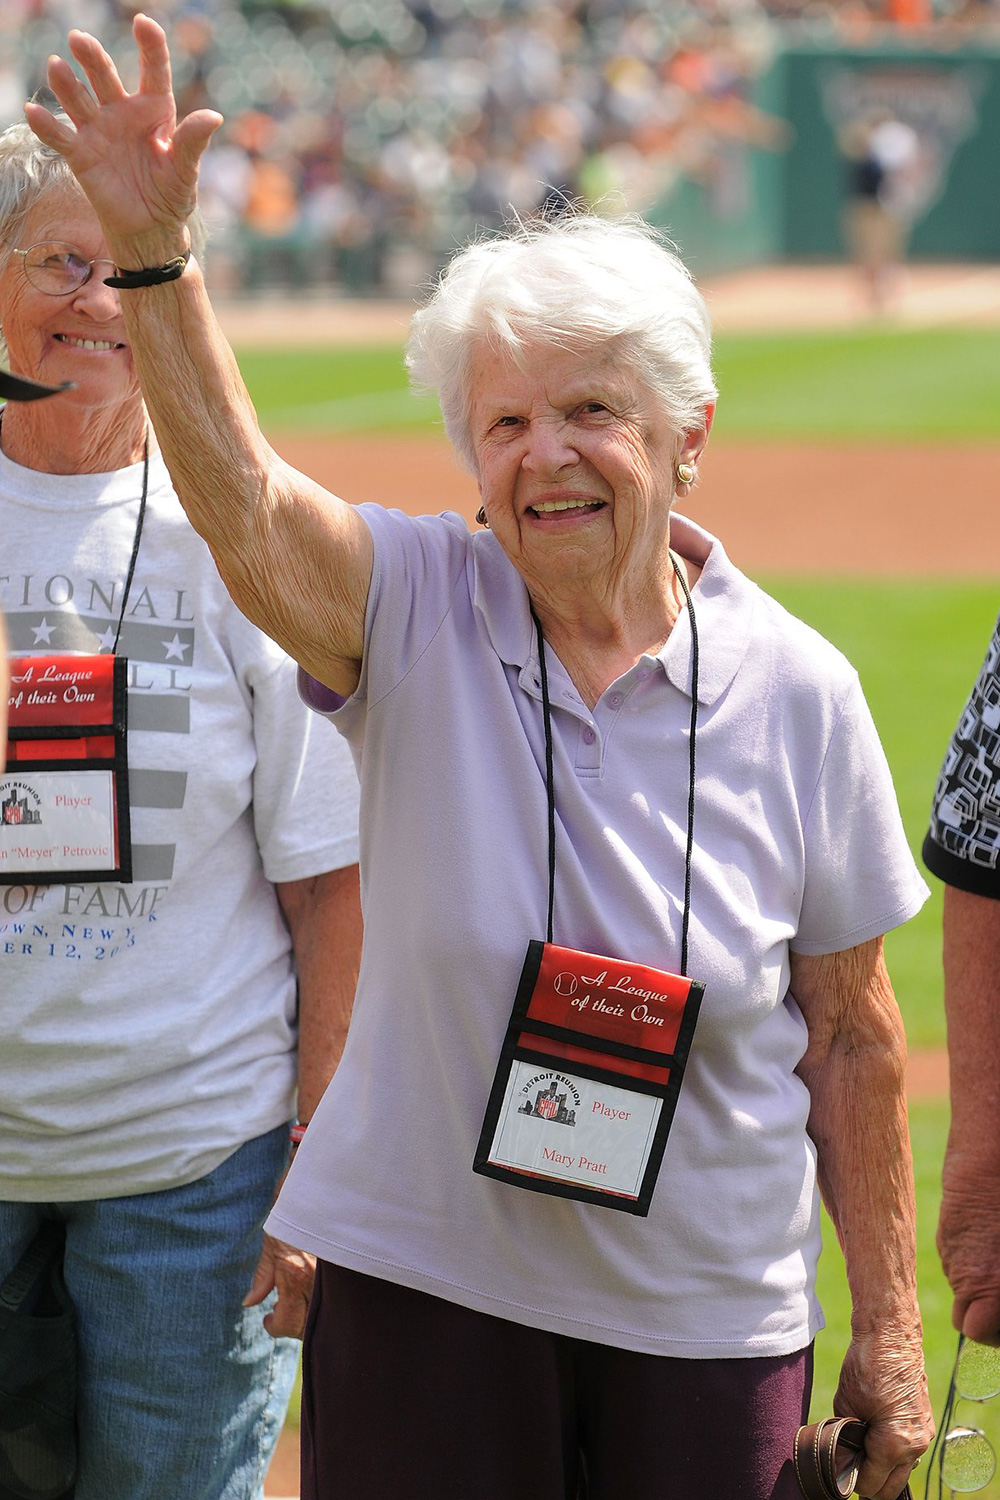 Mary Pratt Last surviving member of Rockford Peaches, of 'League of Their Own' fame, dies at 101